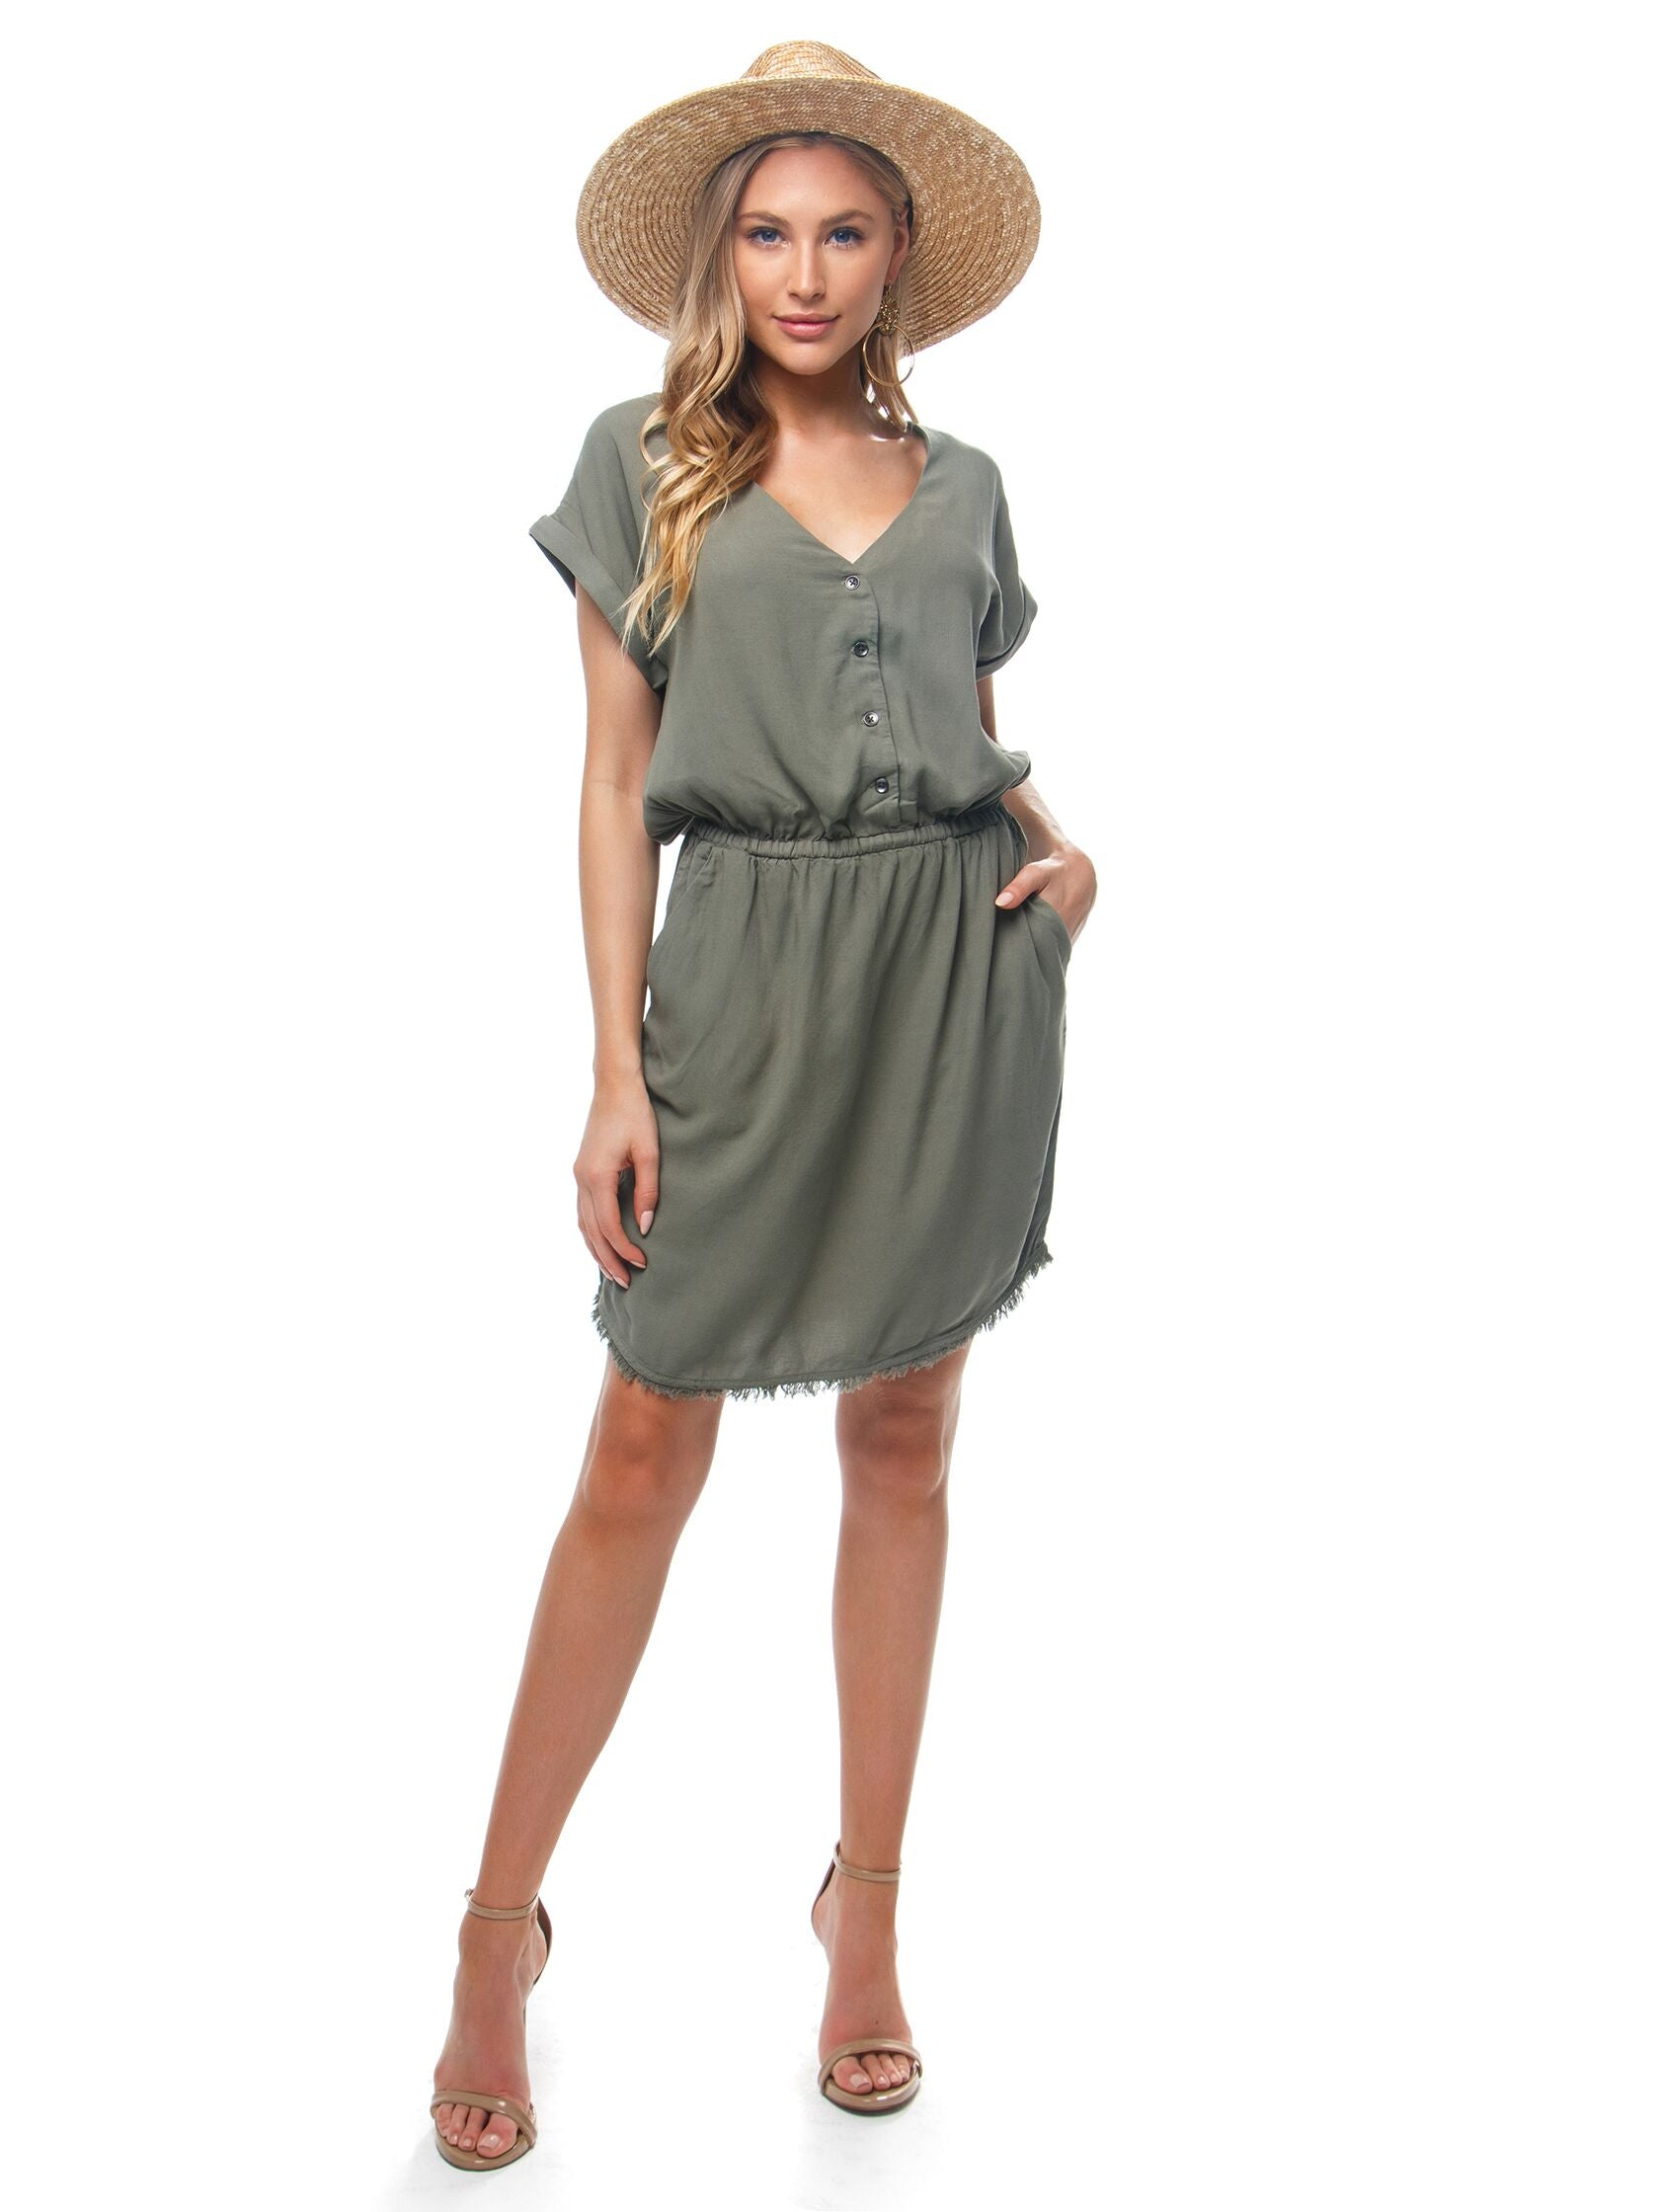 Girl outfit in a dress rental from Splendid called Kaya Crosshatch Cross Back Dress